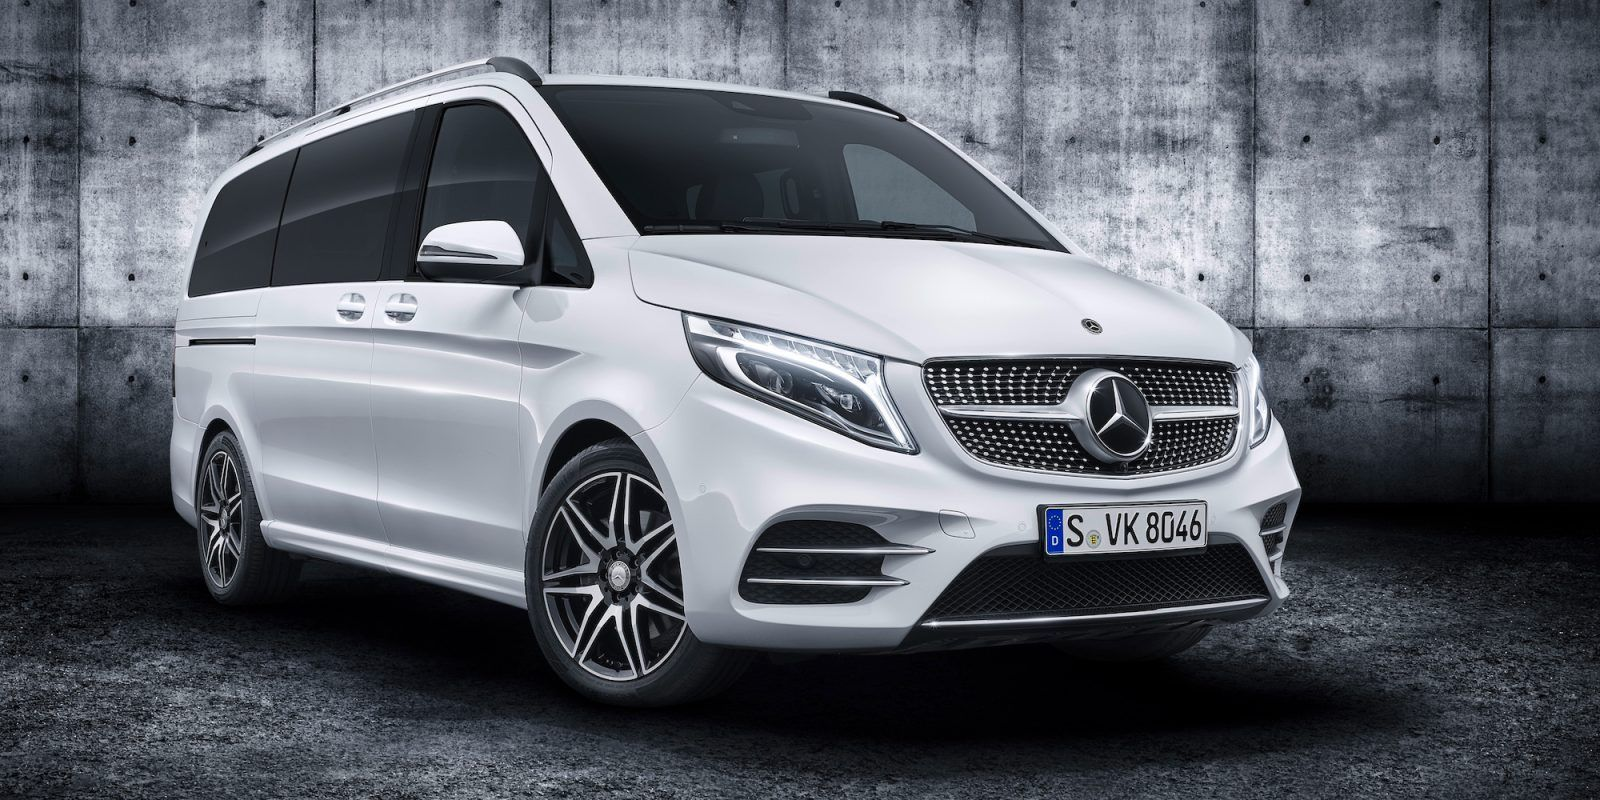 Mercedes Benz To Unveil All Electric Concept Mpv Family Van In Geneva Slated For 2022 Debut Mercedes Benz Vans Mercedes Benz Mercedes